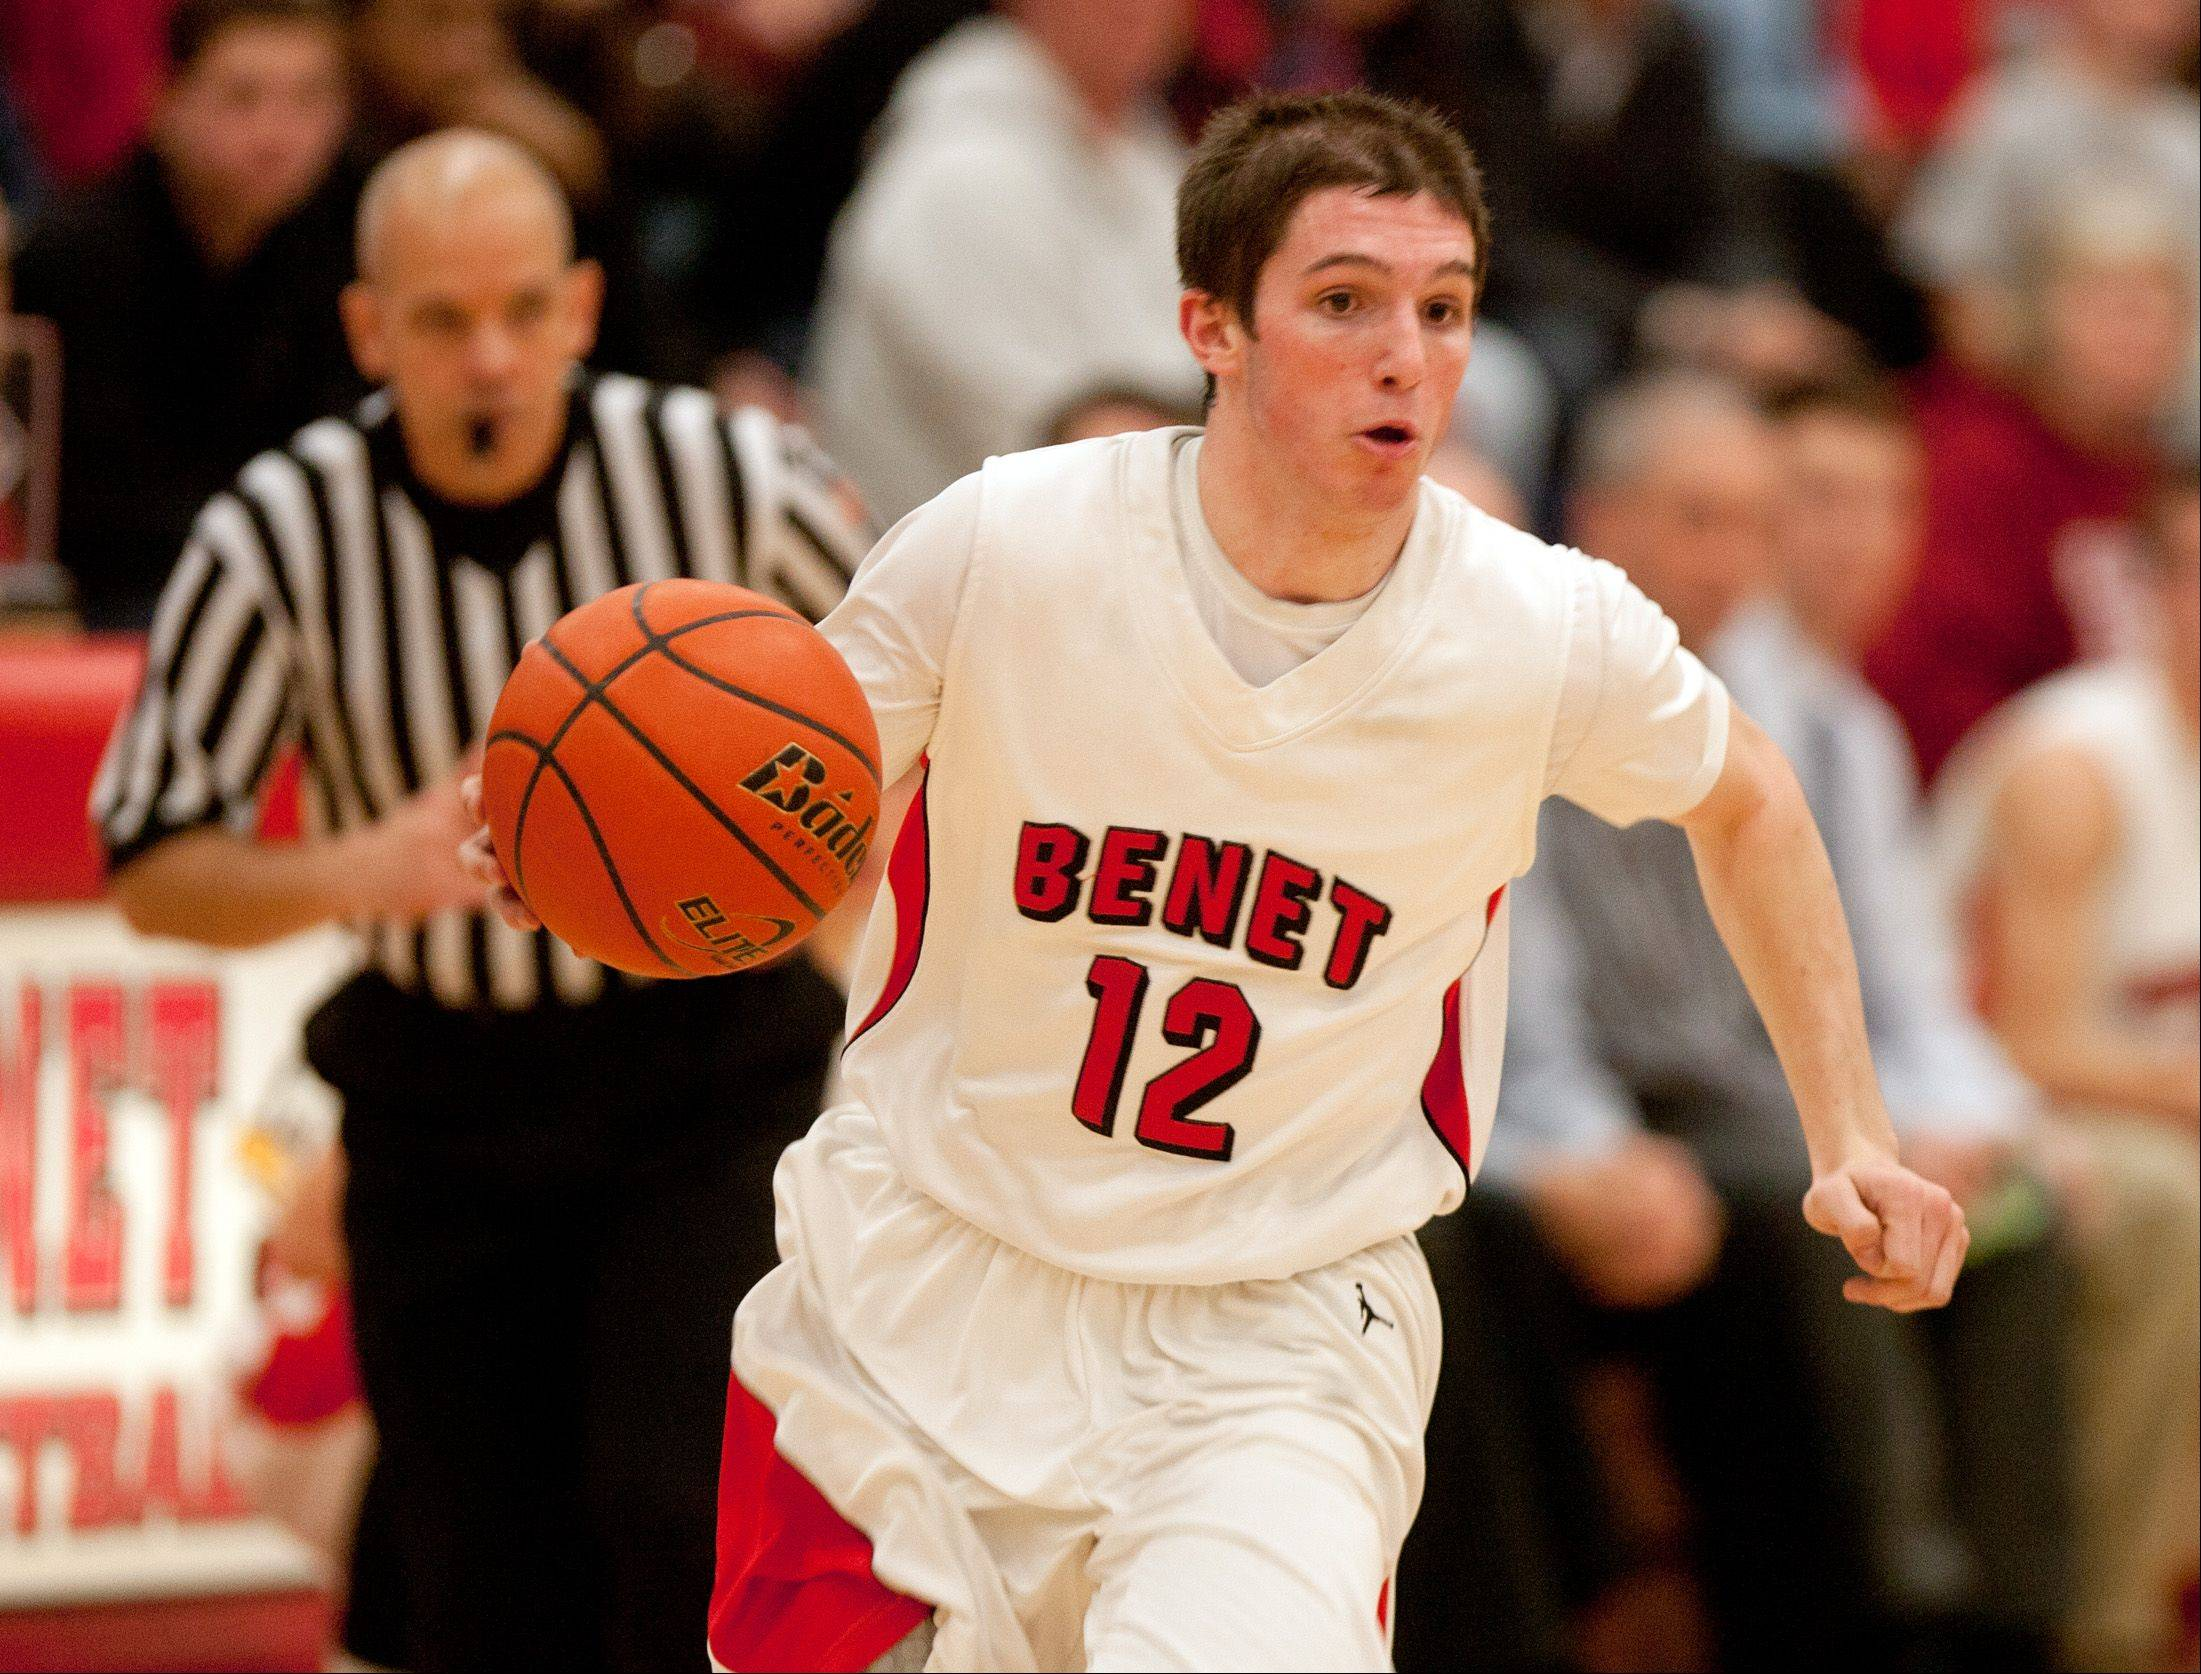 Benet is seeded No. 2 at the Class 4A Bolingbrook sectional.